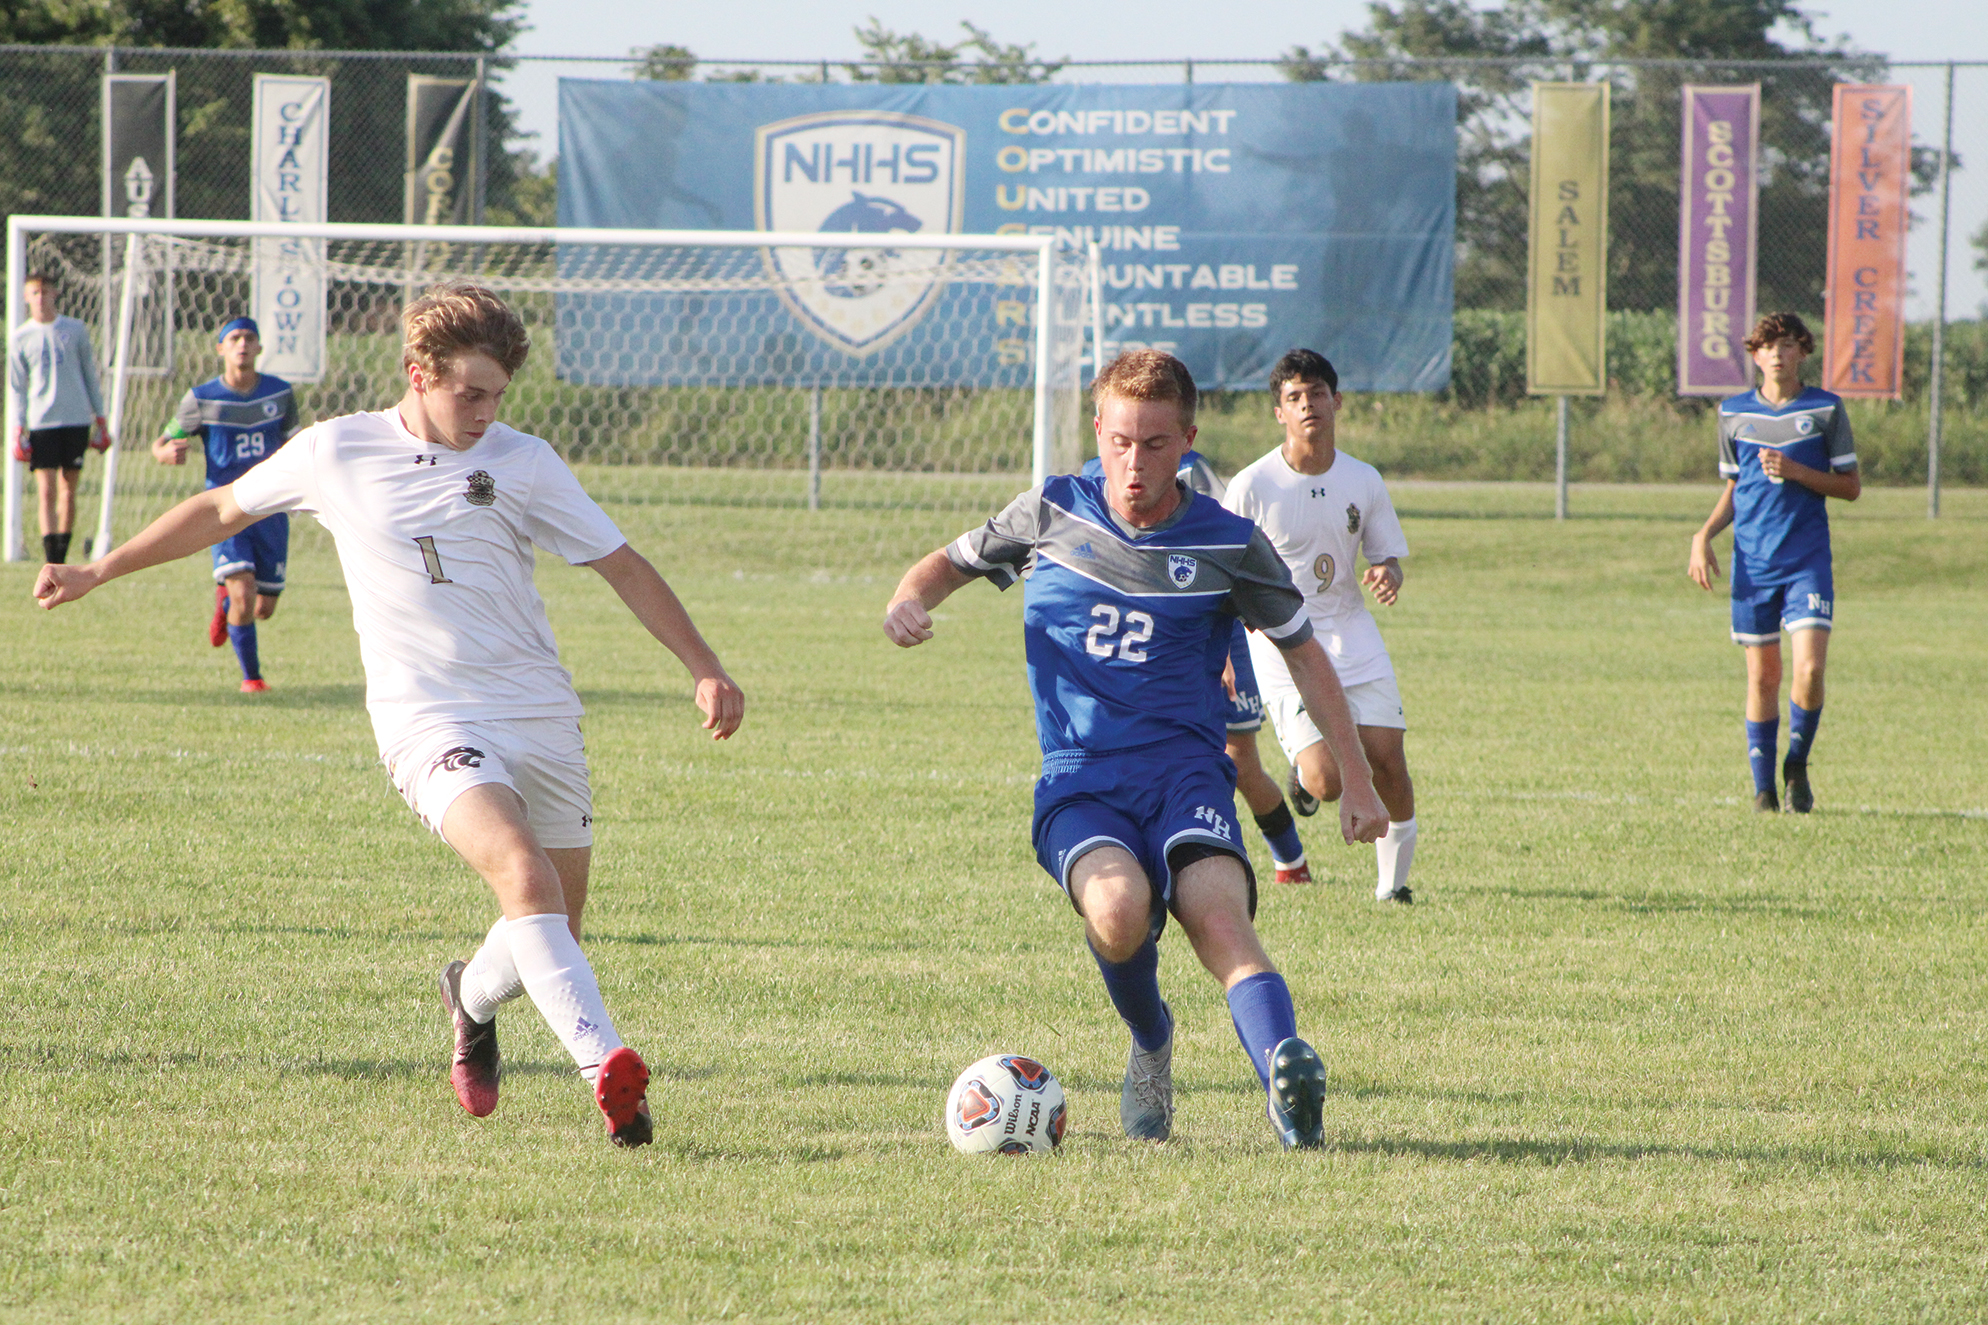 Early goals lift Cougars over Panthers, 3-0